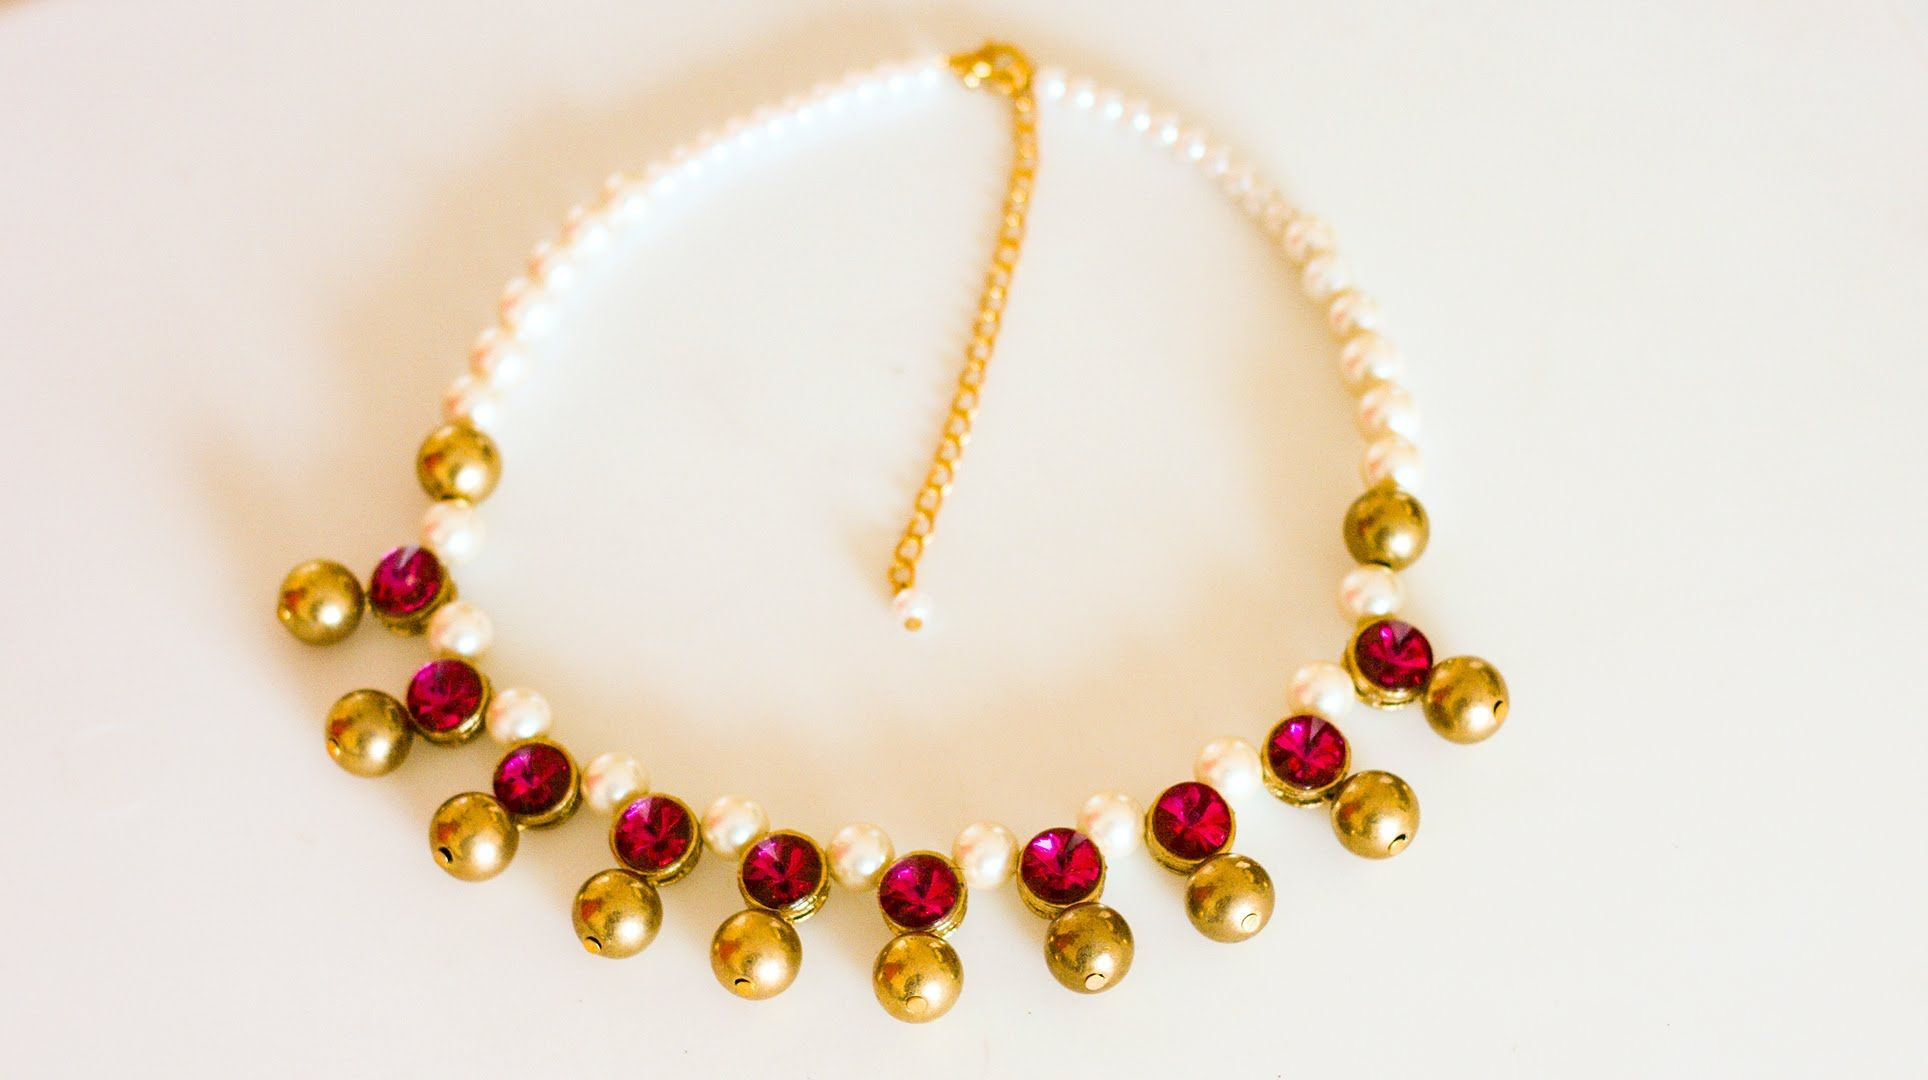 and pin to diy necklace fast easy how make